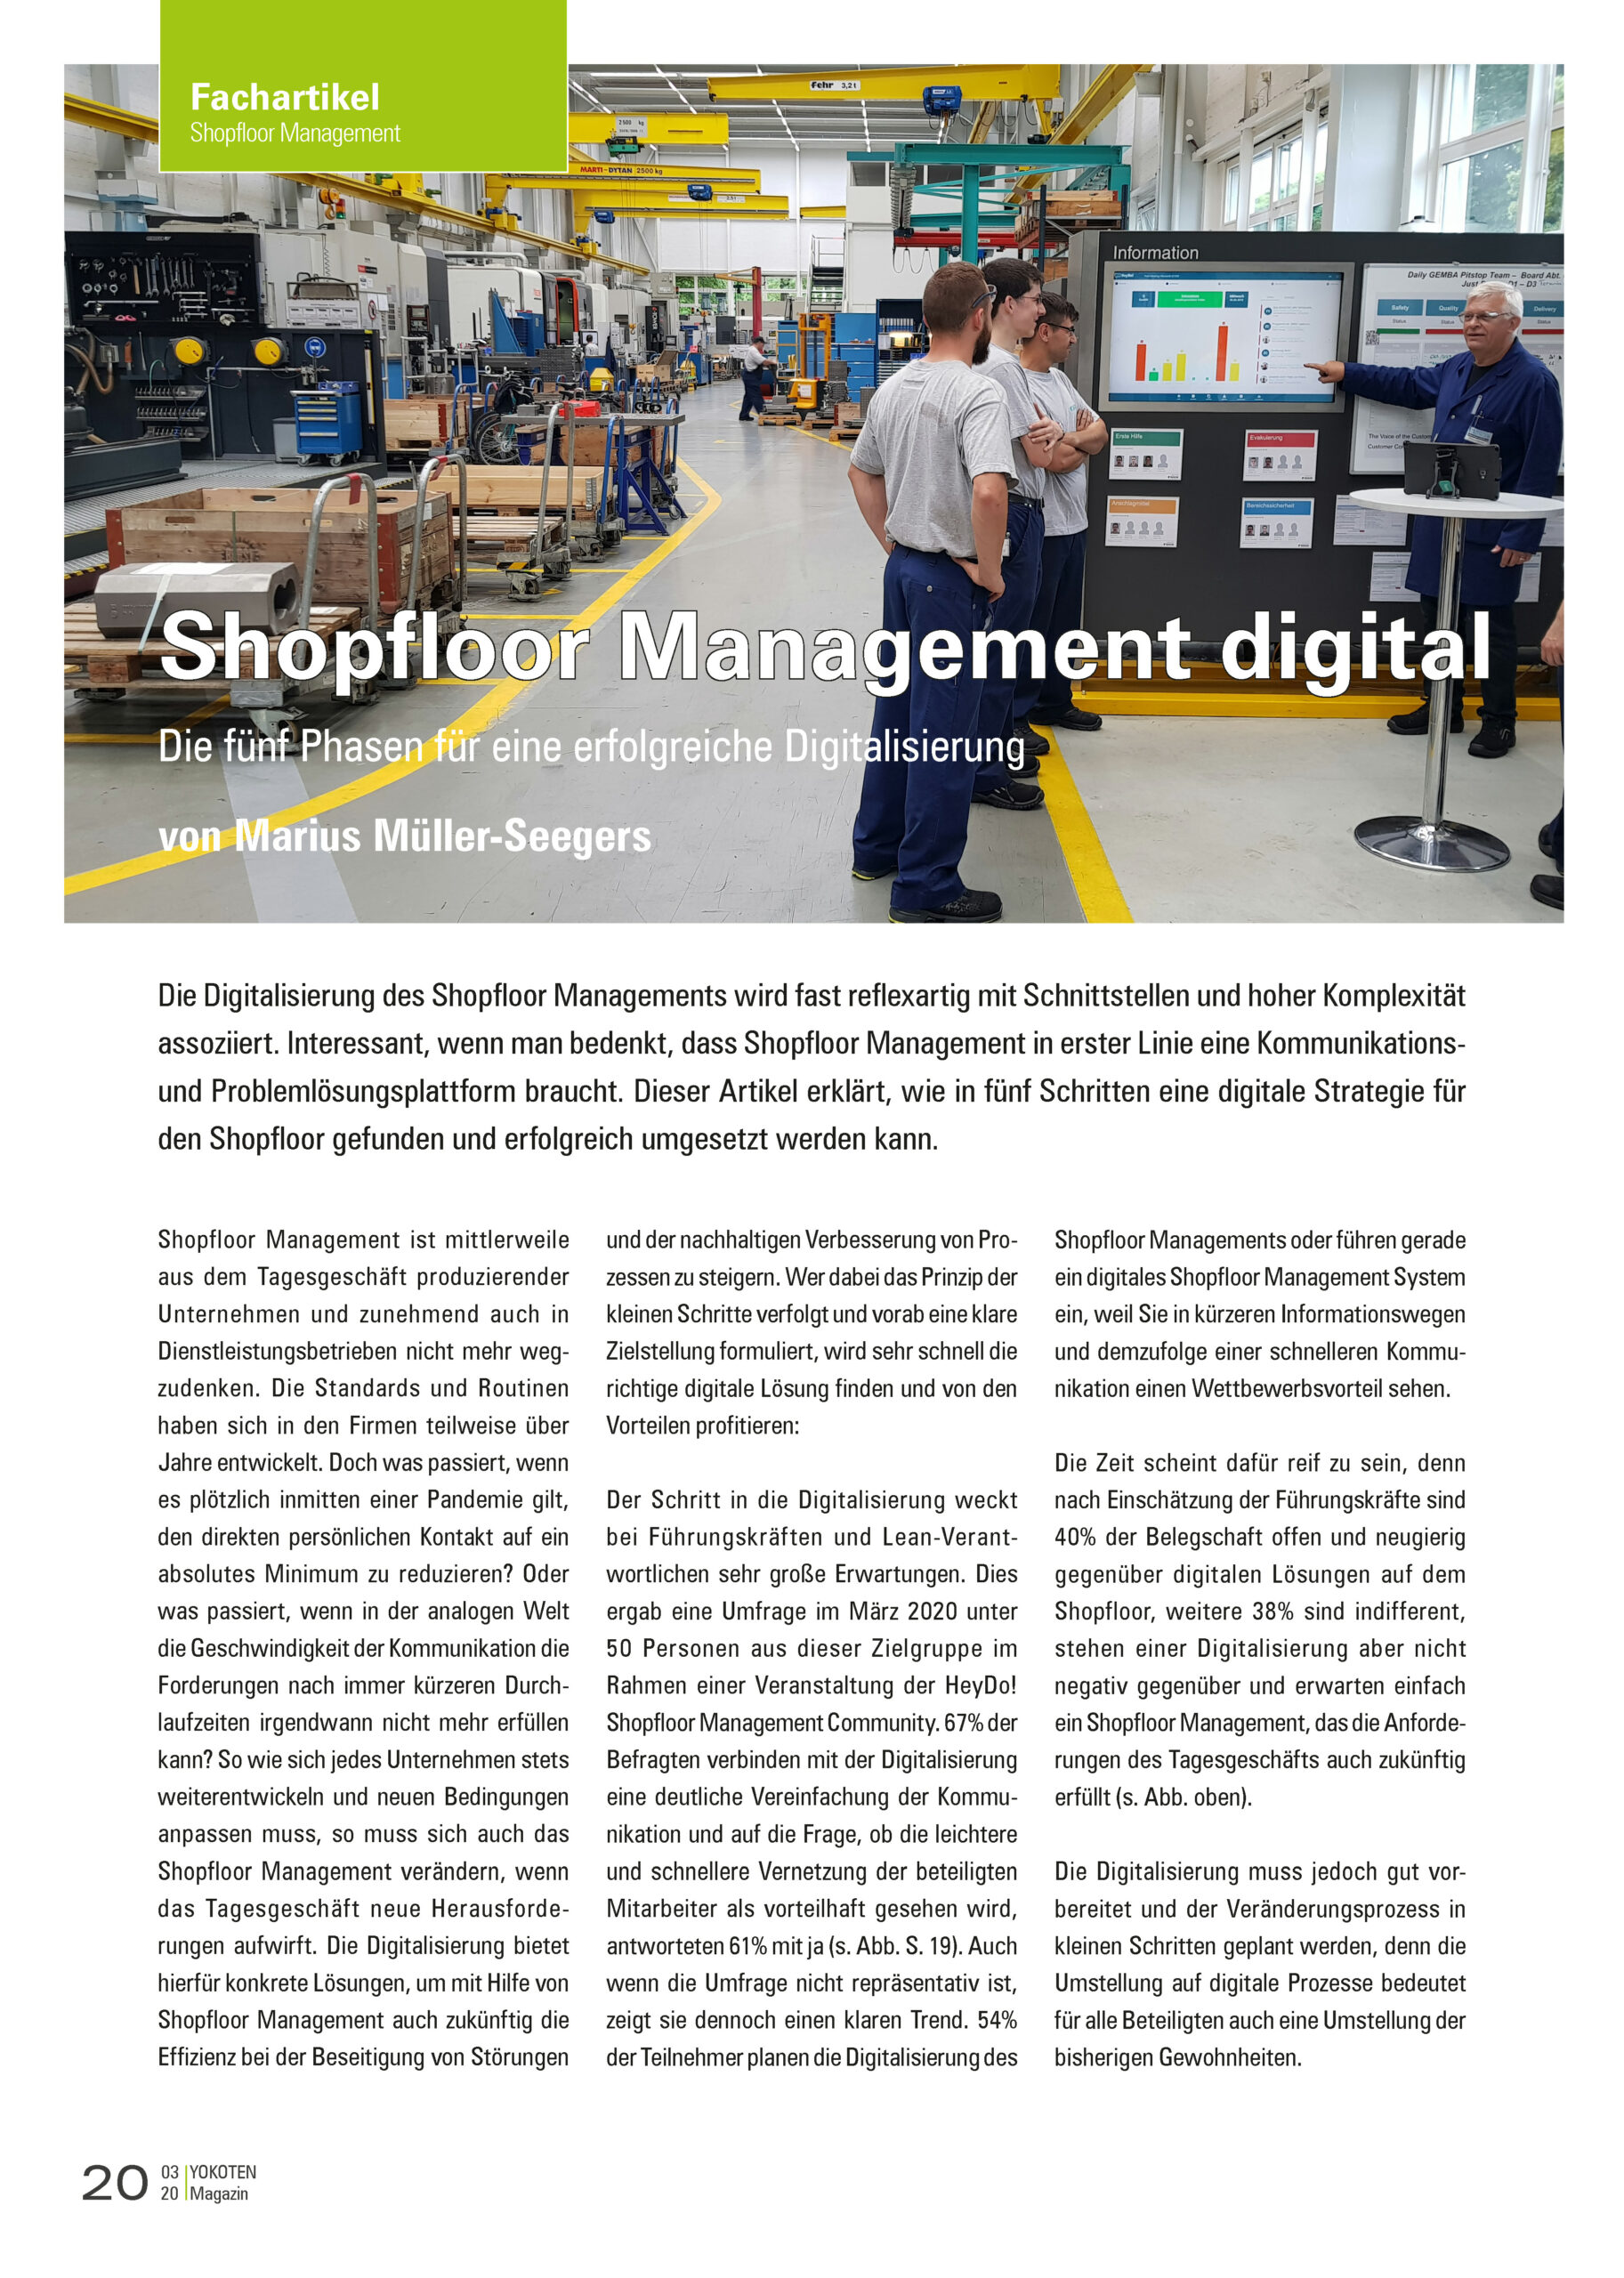 Fachartikel Shopfloor Management